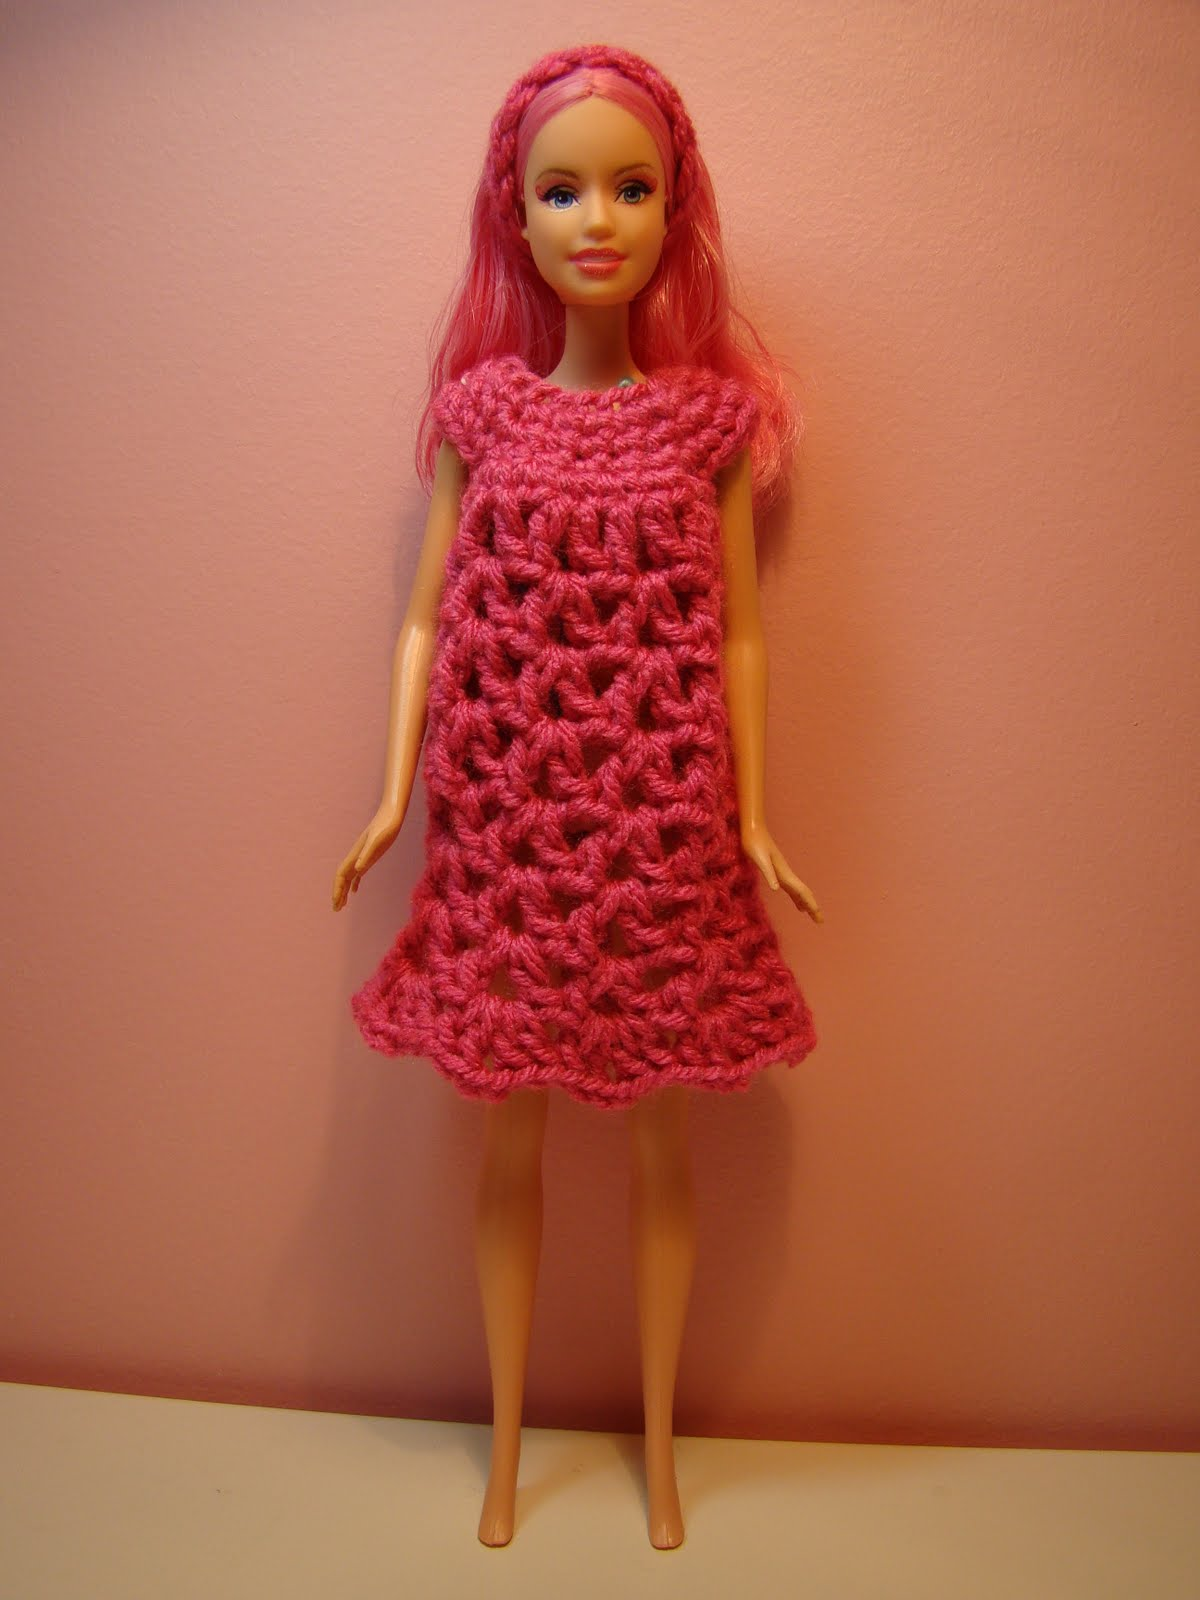 Crocheting Clothes : Craft Closet: Crochet Barbie Clothes